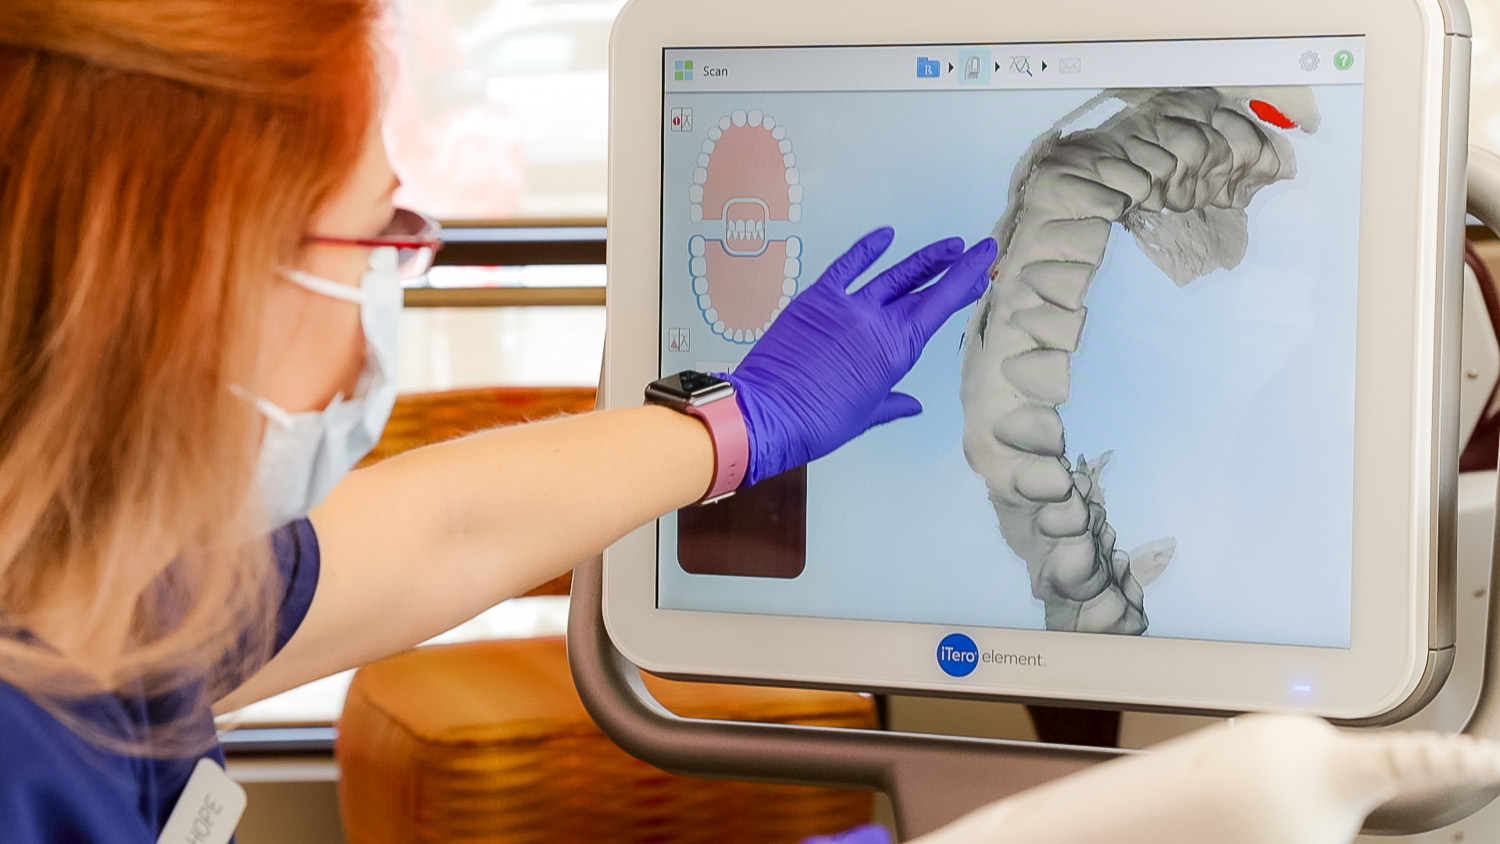 We make a perfect scan of your teeth and show you how your teeth will look when you are done wearing metal braces or clear braces, like Invisalign.